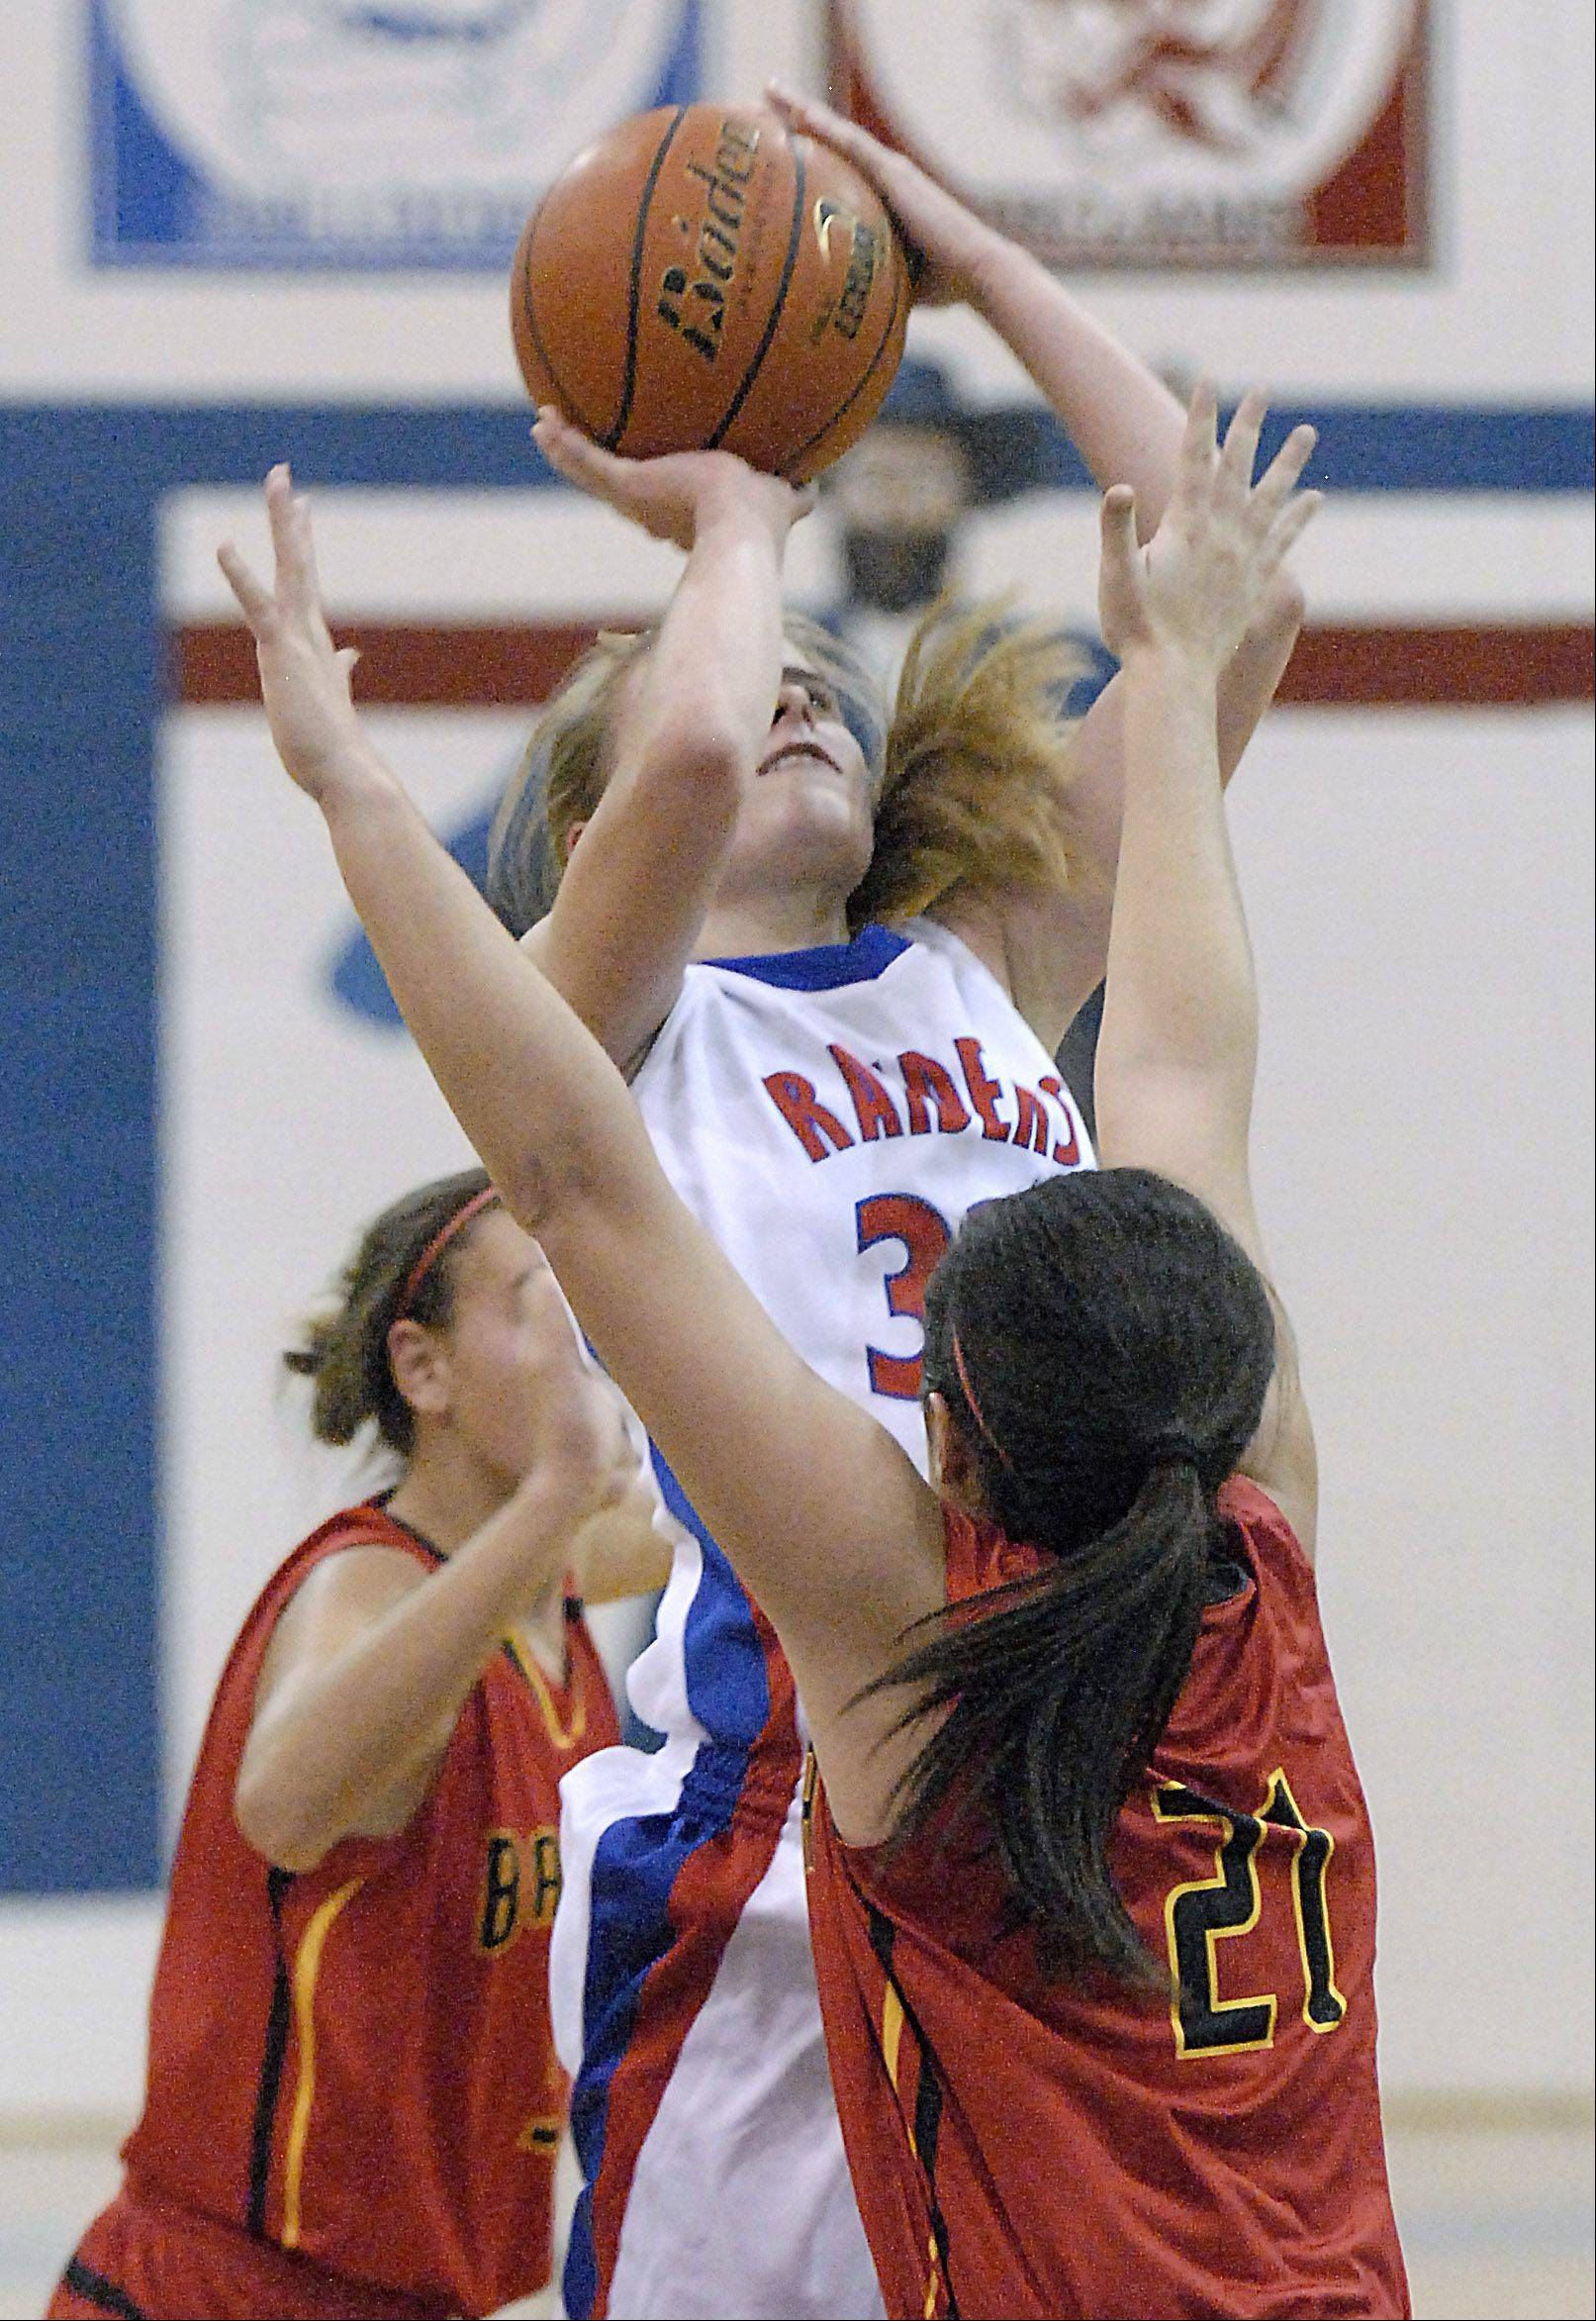 Glenbard South's Tomei Ball shoots over Batavia's Sami Villarreal in the second quarter on Tuesday, November 13.